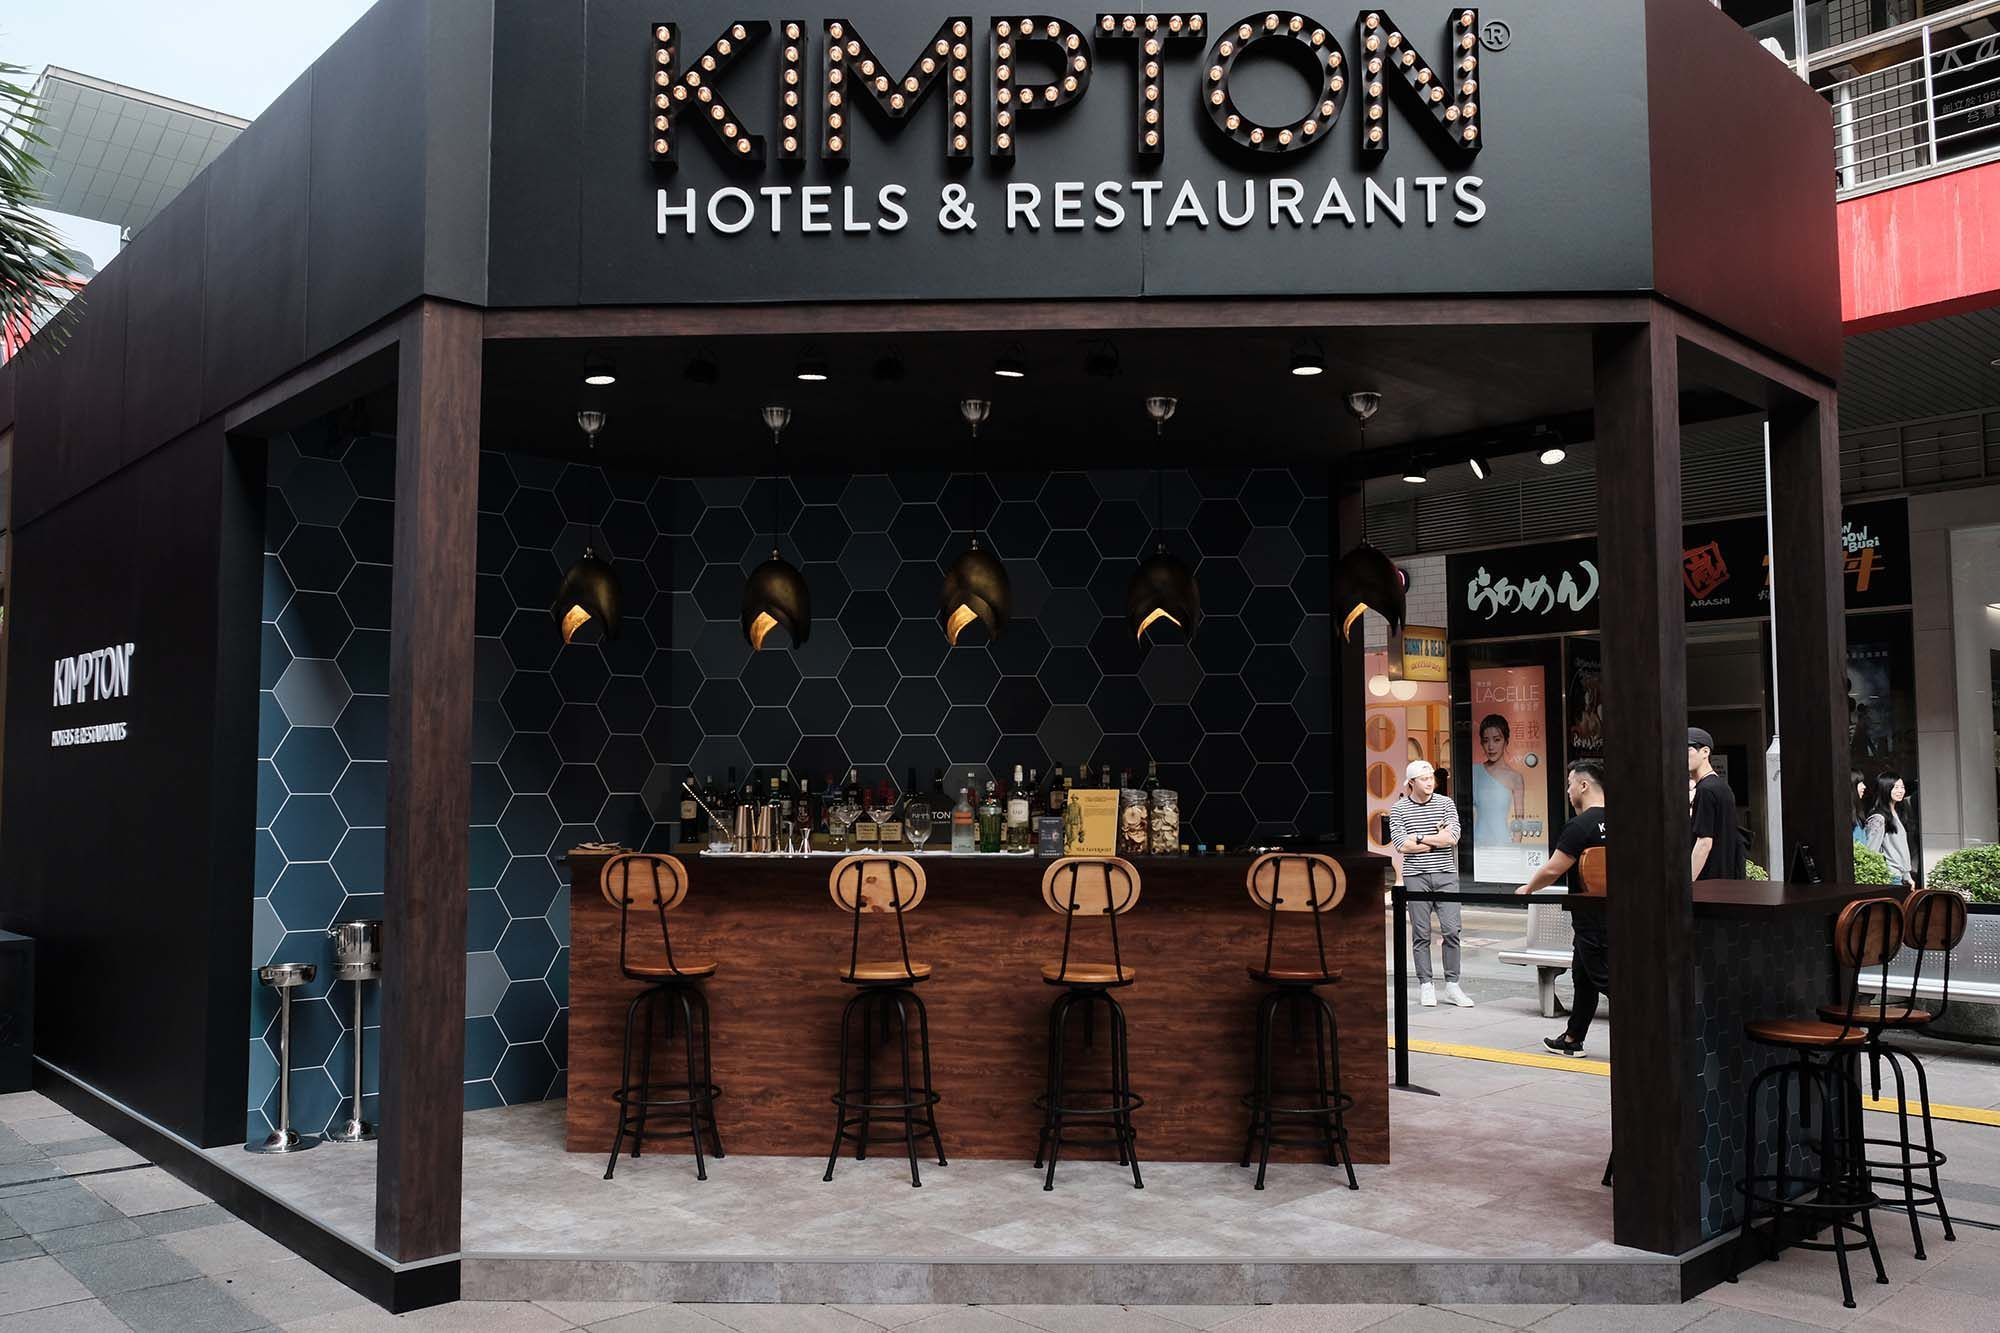 kimpton-hotels-and-restaurants-pop-up-in-taiepi-03